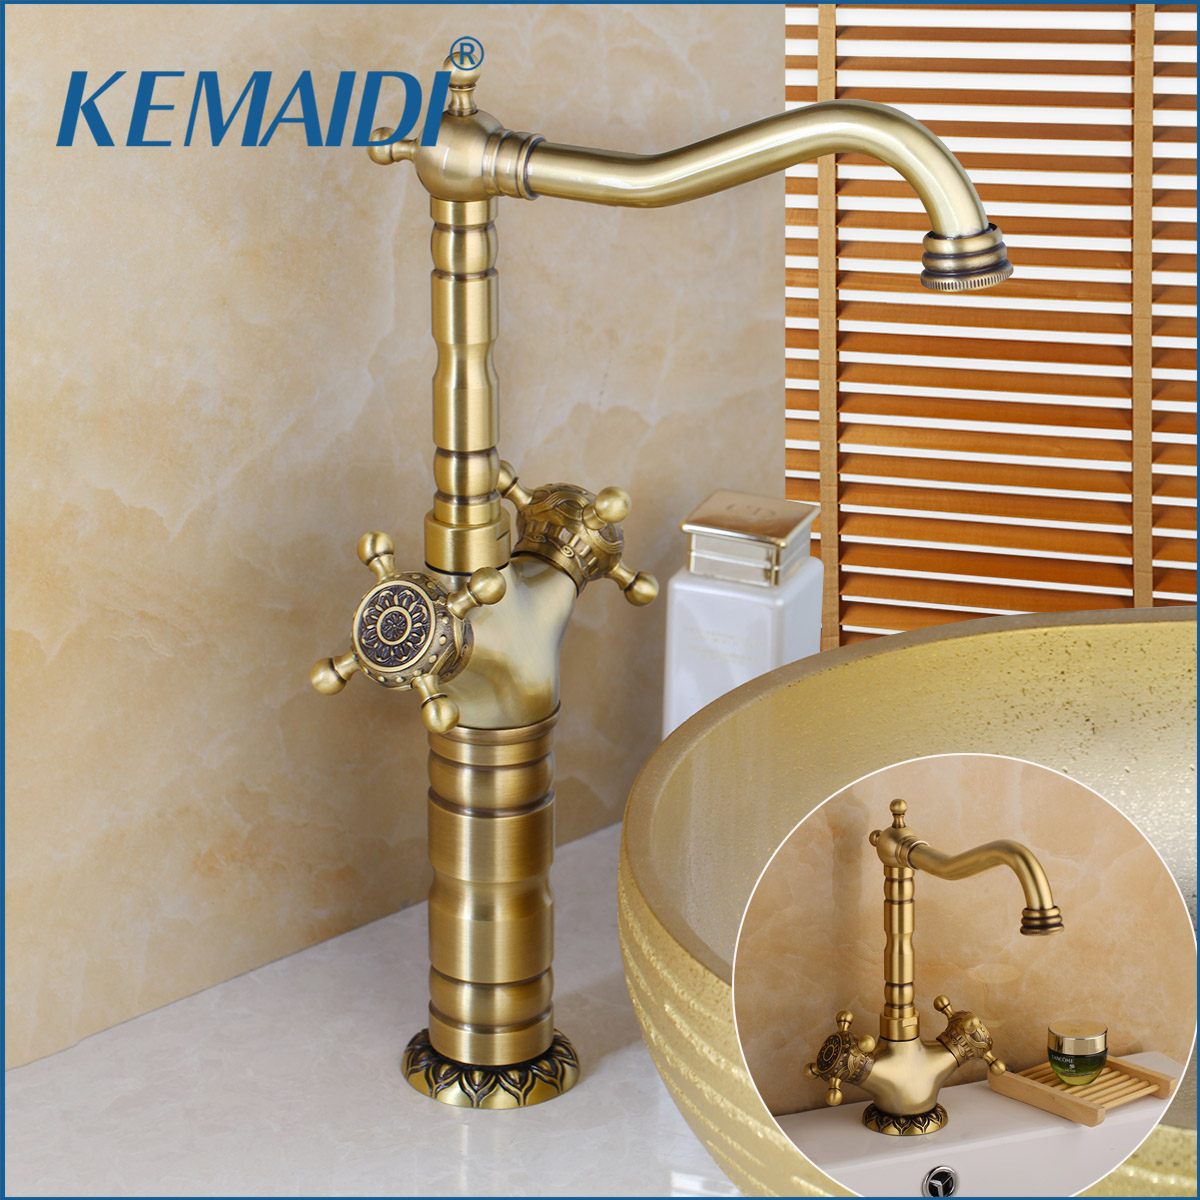 KEMAIDI Elegant Antique Brass Bathroom Sink Faucets Long Short 360 Swivel Mixer Taps Vanity Brass Faucet